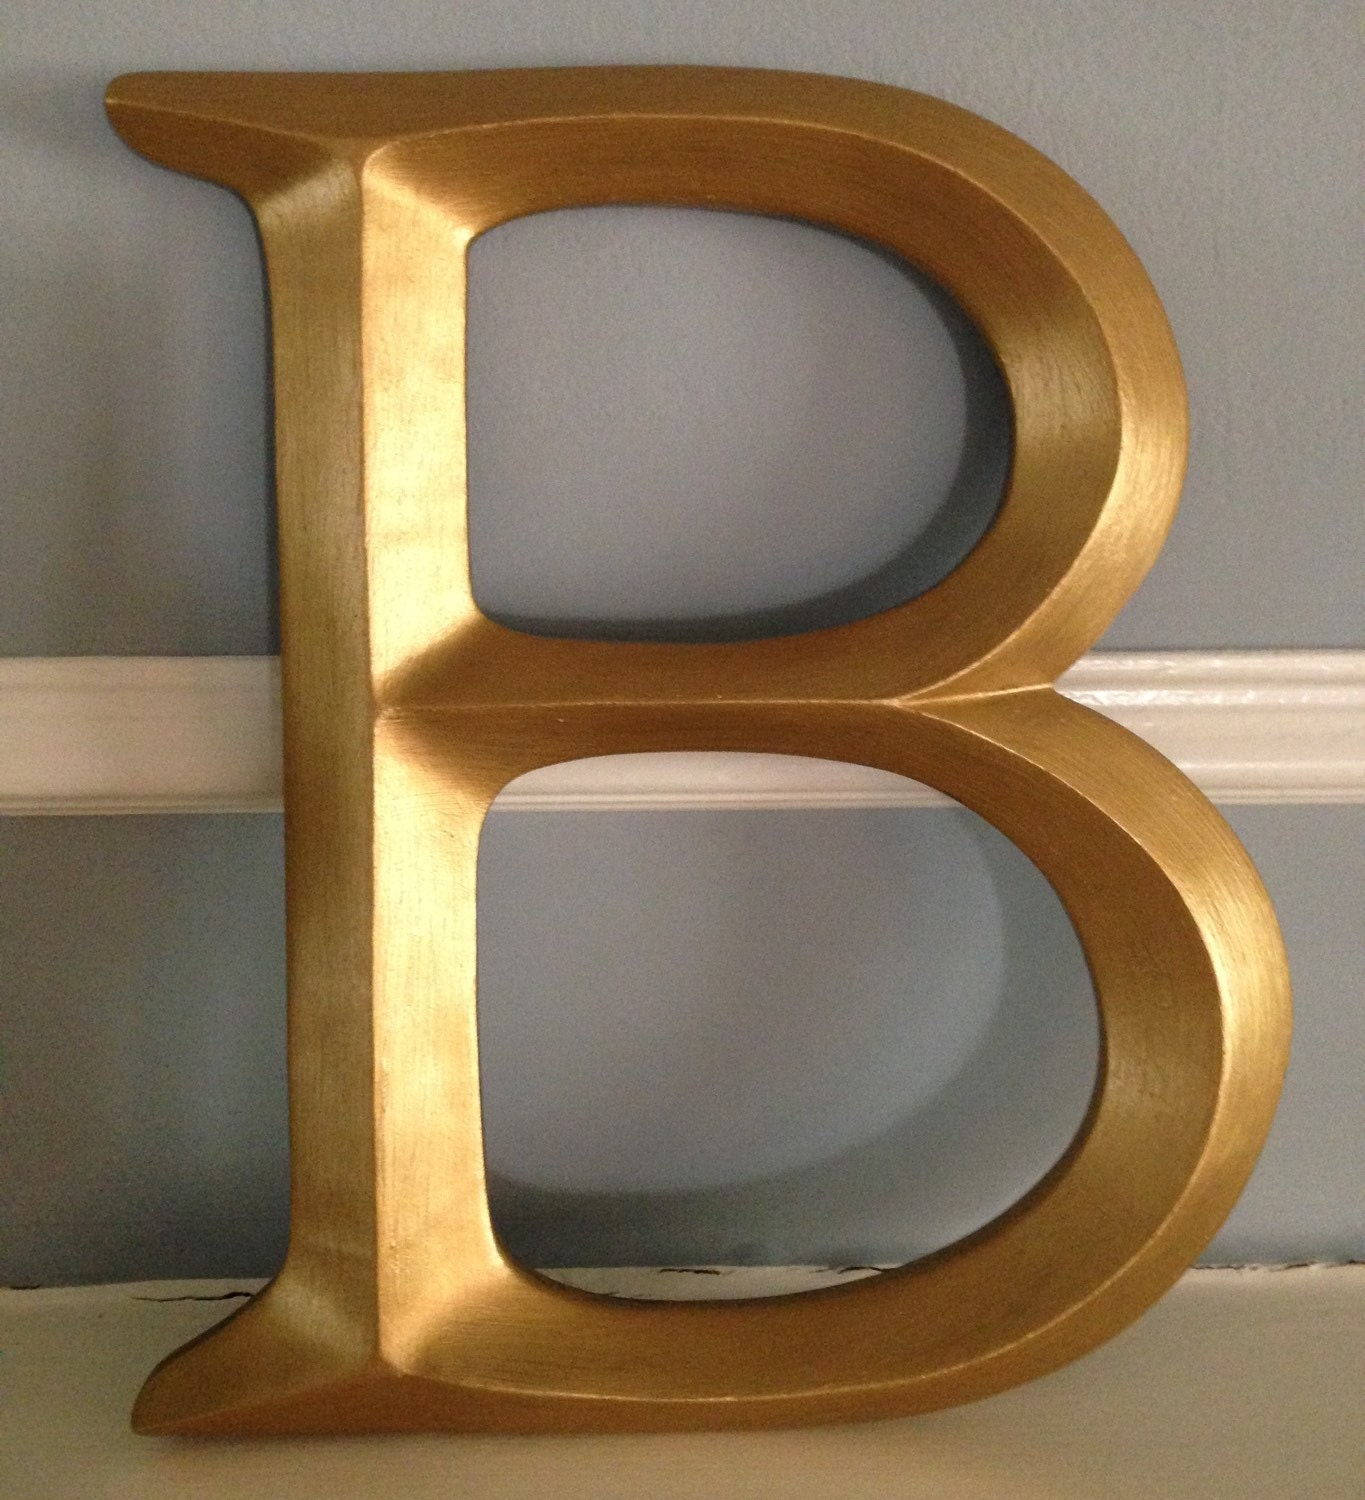 Gold Letters For Wall Large Single Letter Initials Monogram Letter B Gold